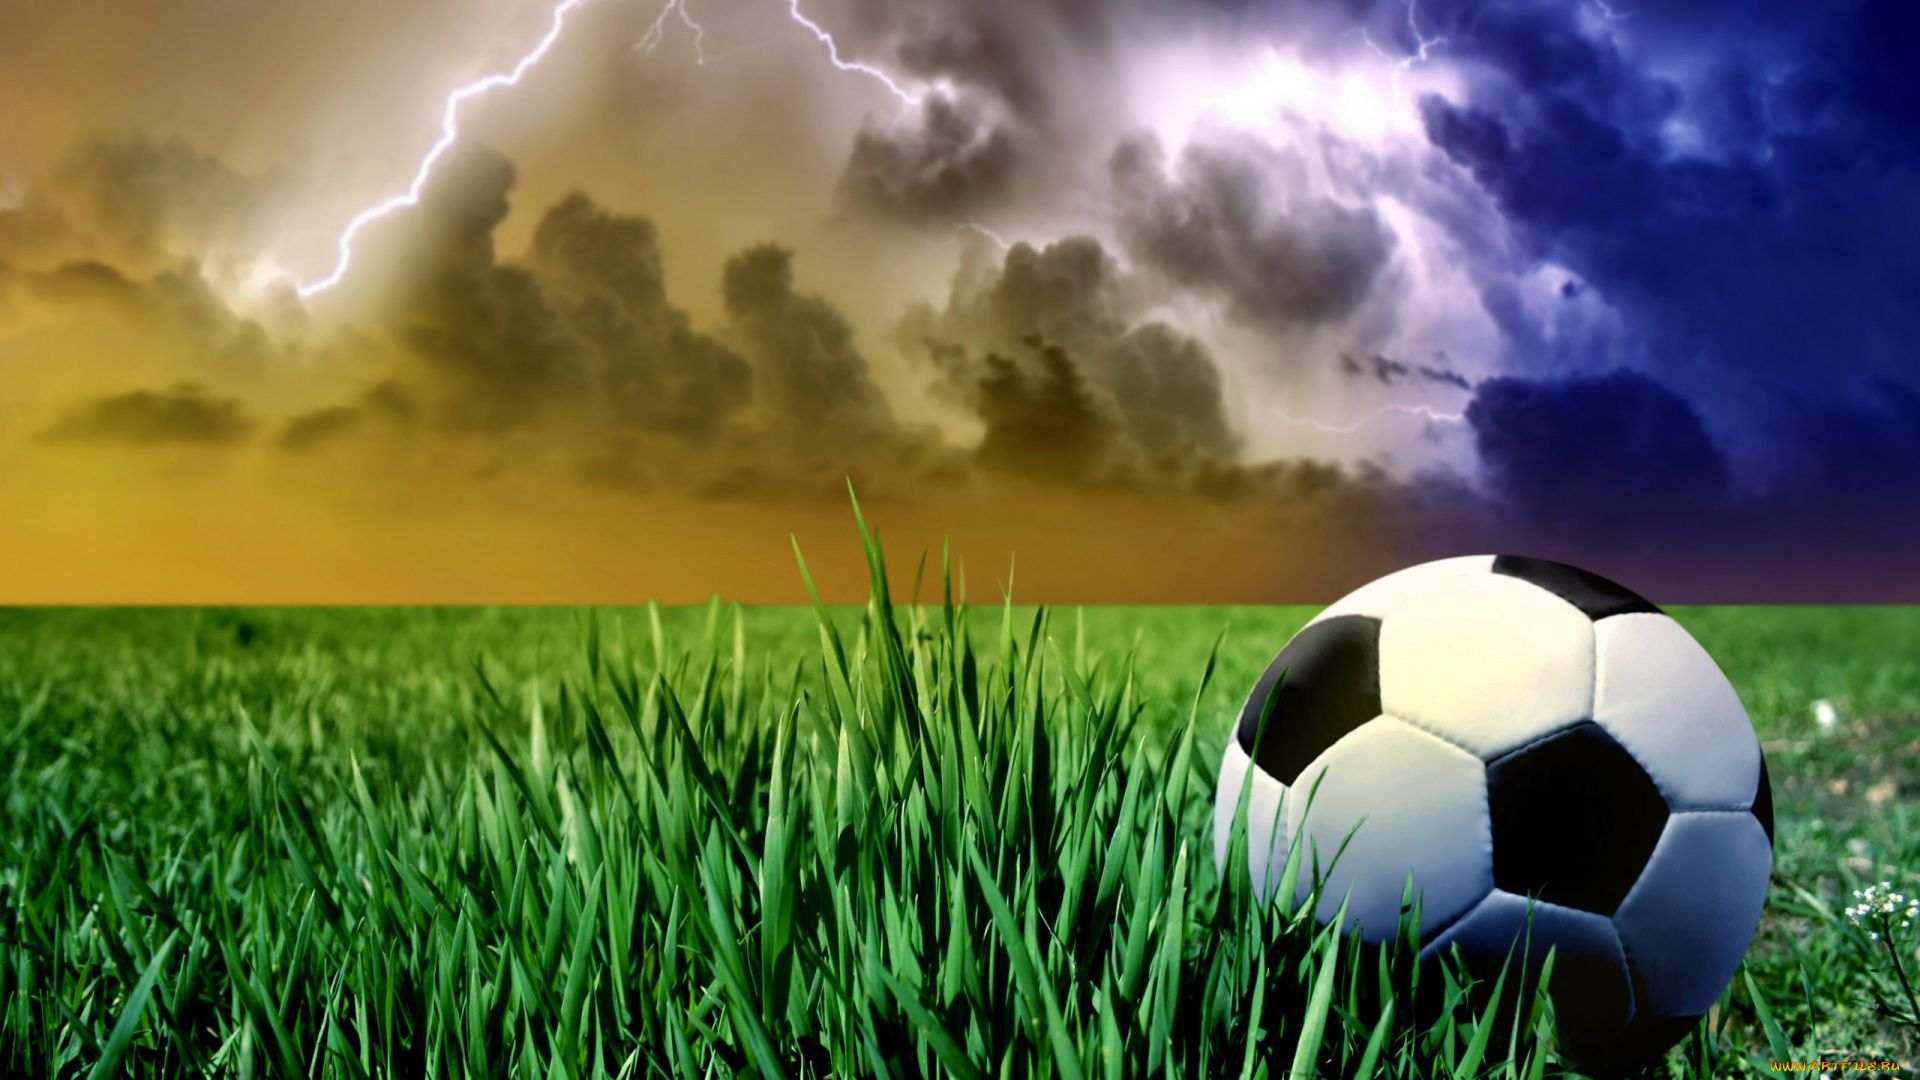 Photo Of A Soccer Ball On The Field